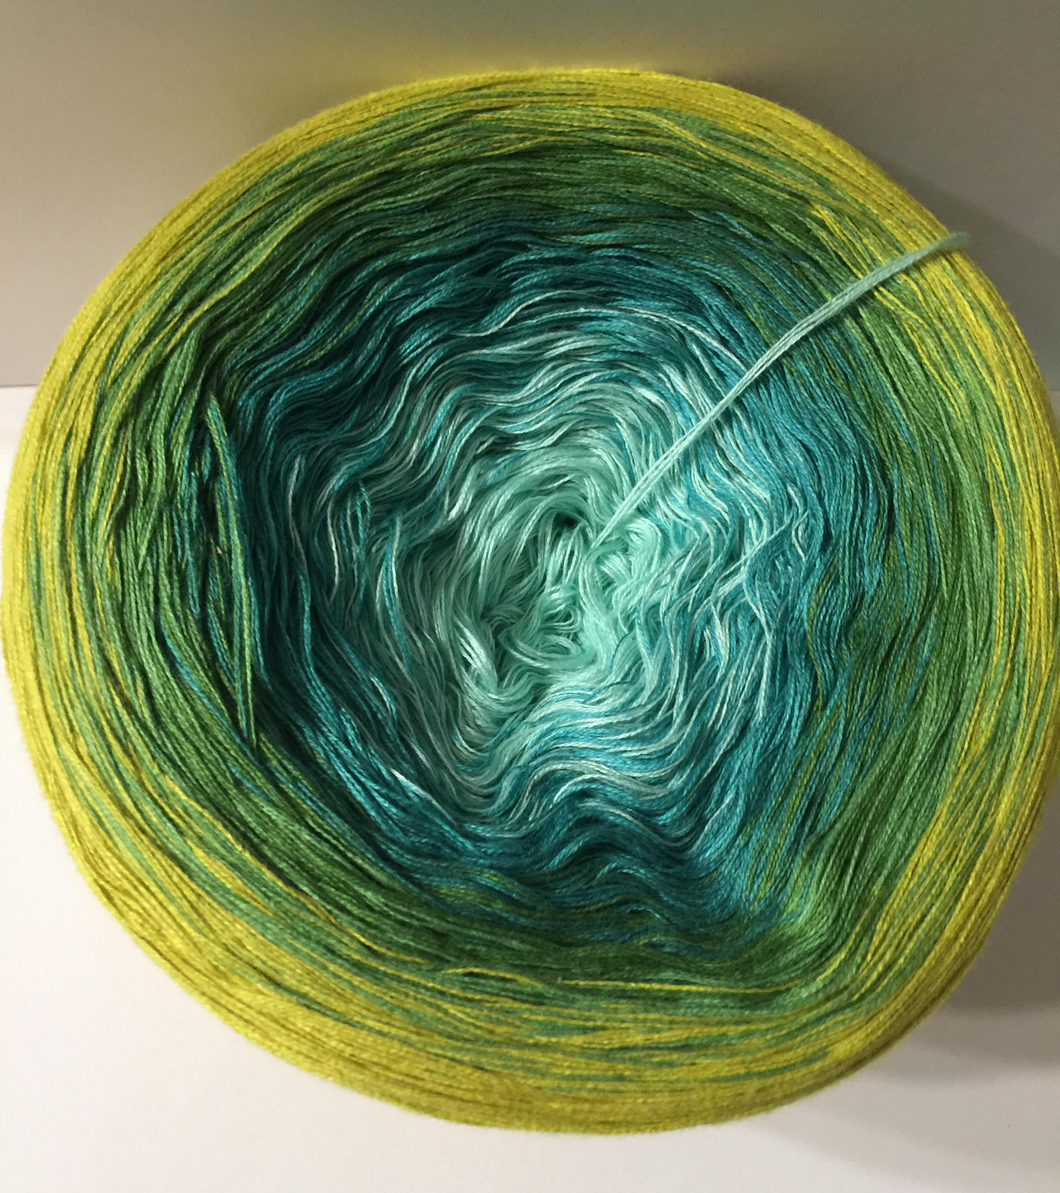 sing_the_green_blues_wolltraum_green_mint_lime_gradient_ombre_yarn